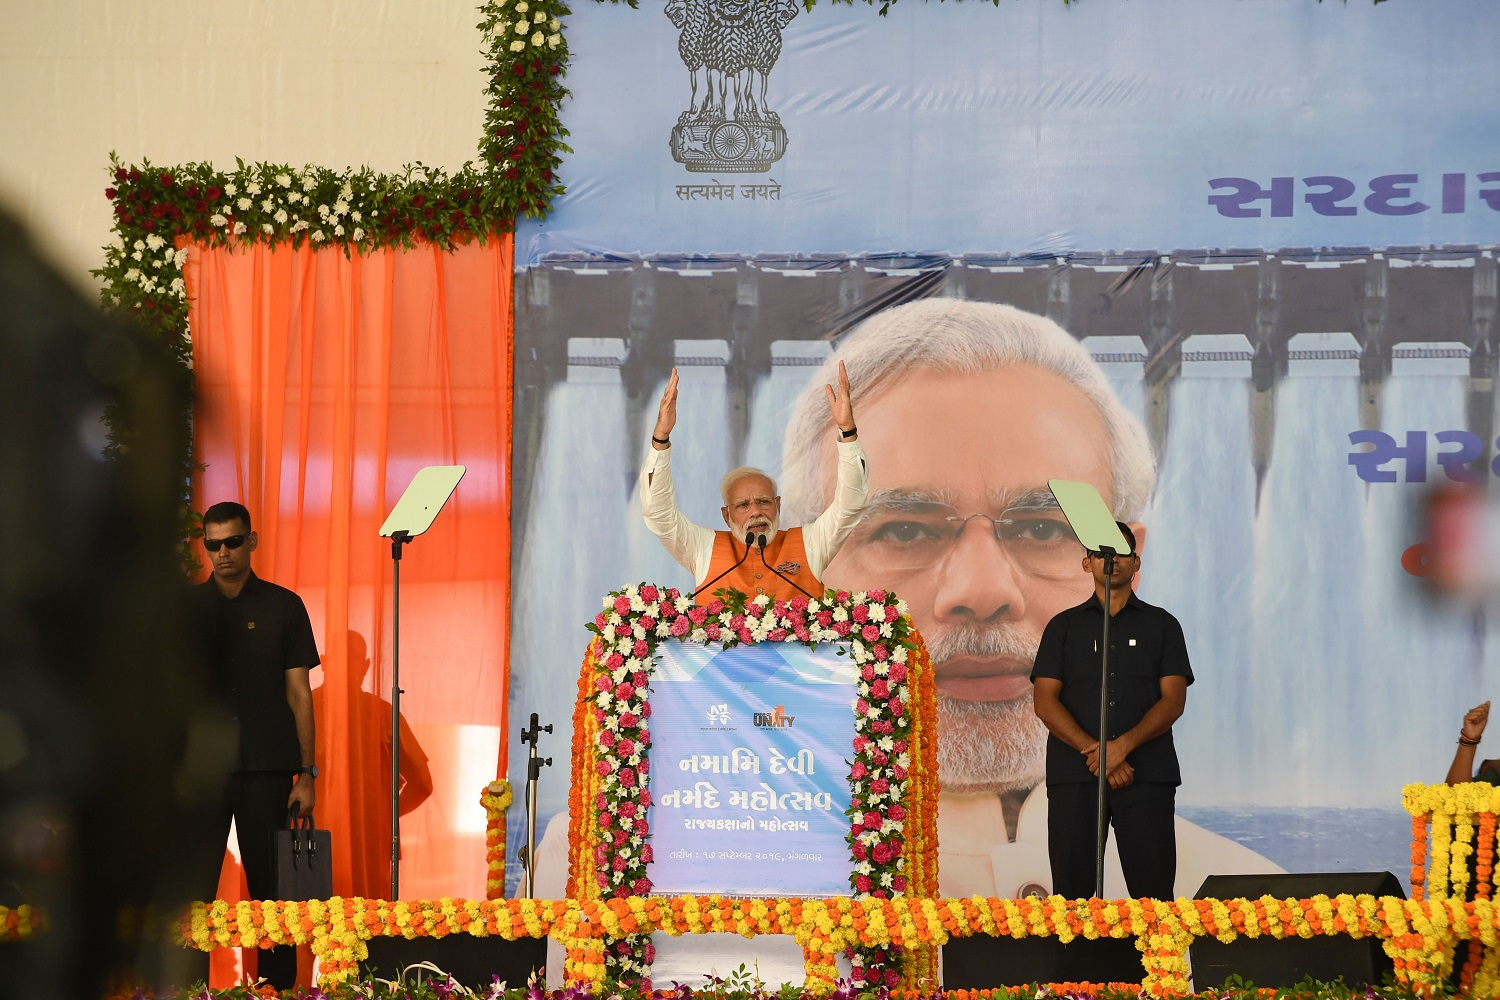 Indian Prime Minister, Narendra Modi (C) gives a speech at the  Kevadia Colony of Narmada District, some 200 km from Ahmedabad, on September 17, 2019.